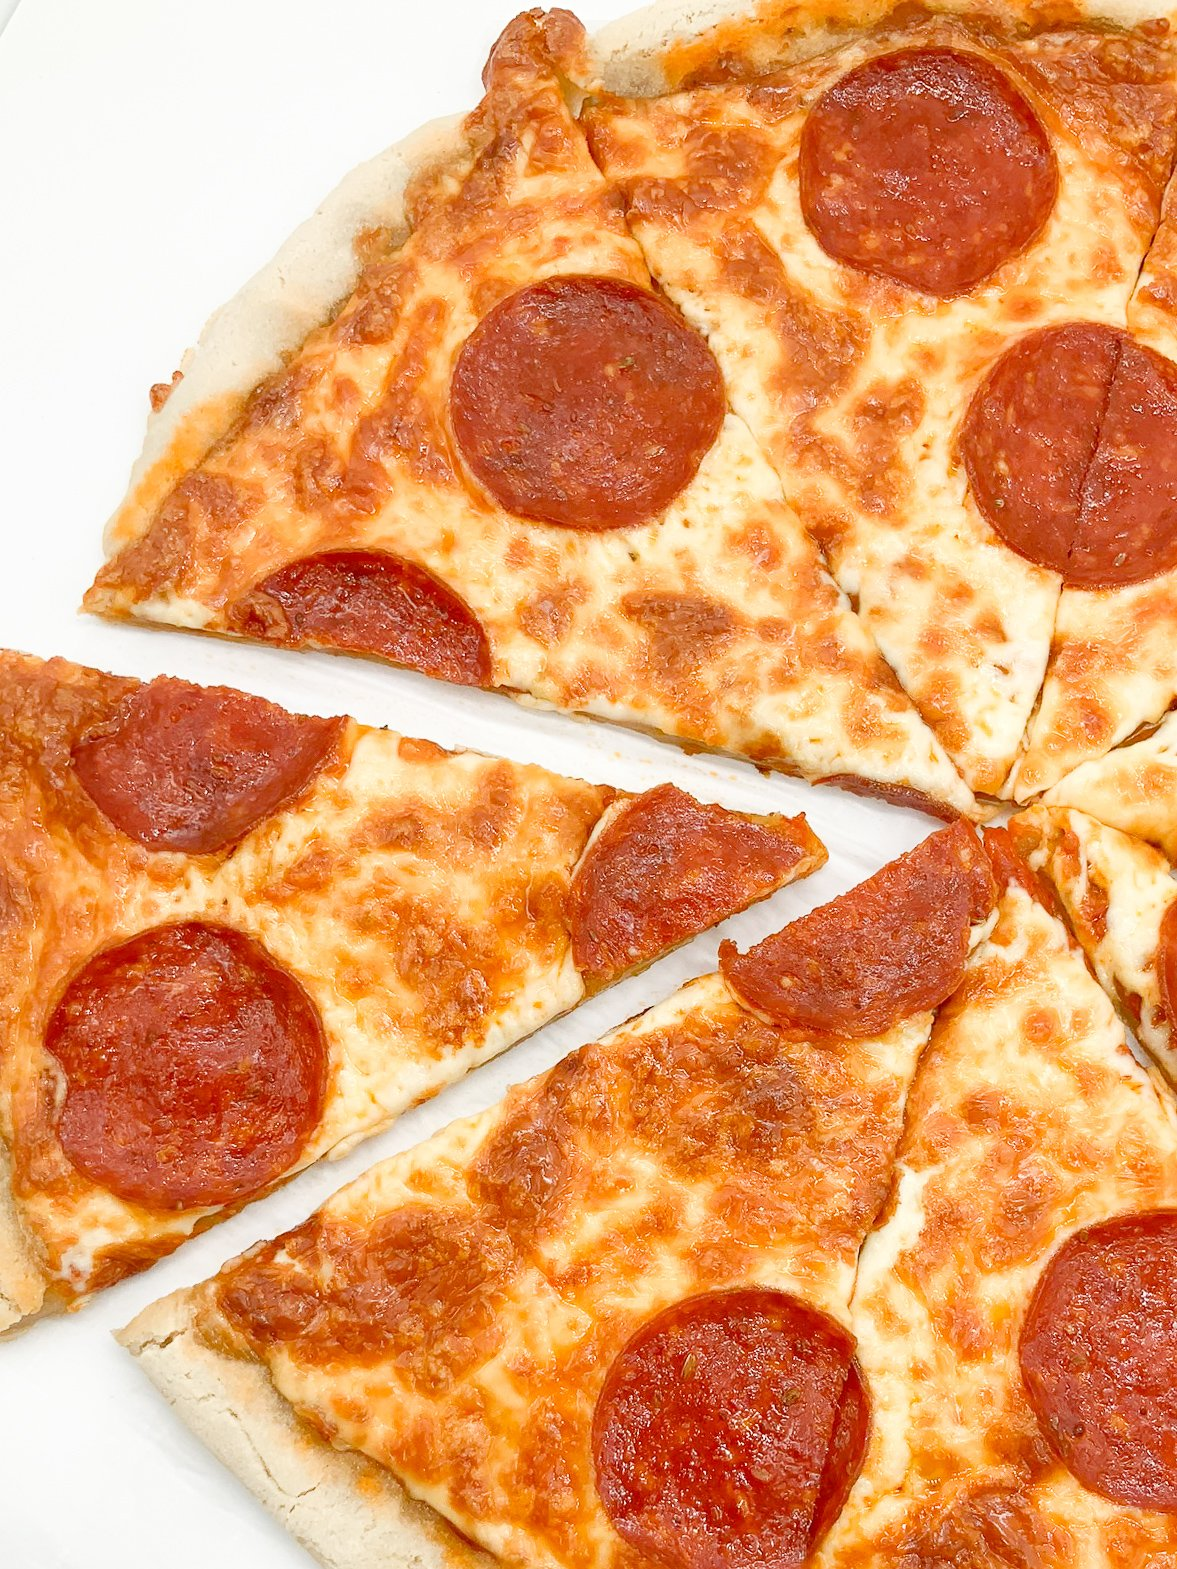 grain-free pepperoni pizza sliced and being grabbed